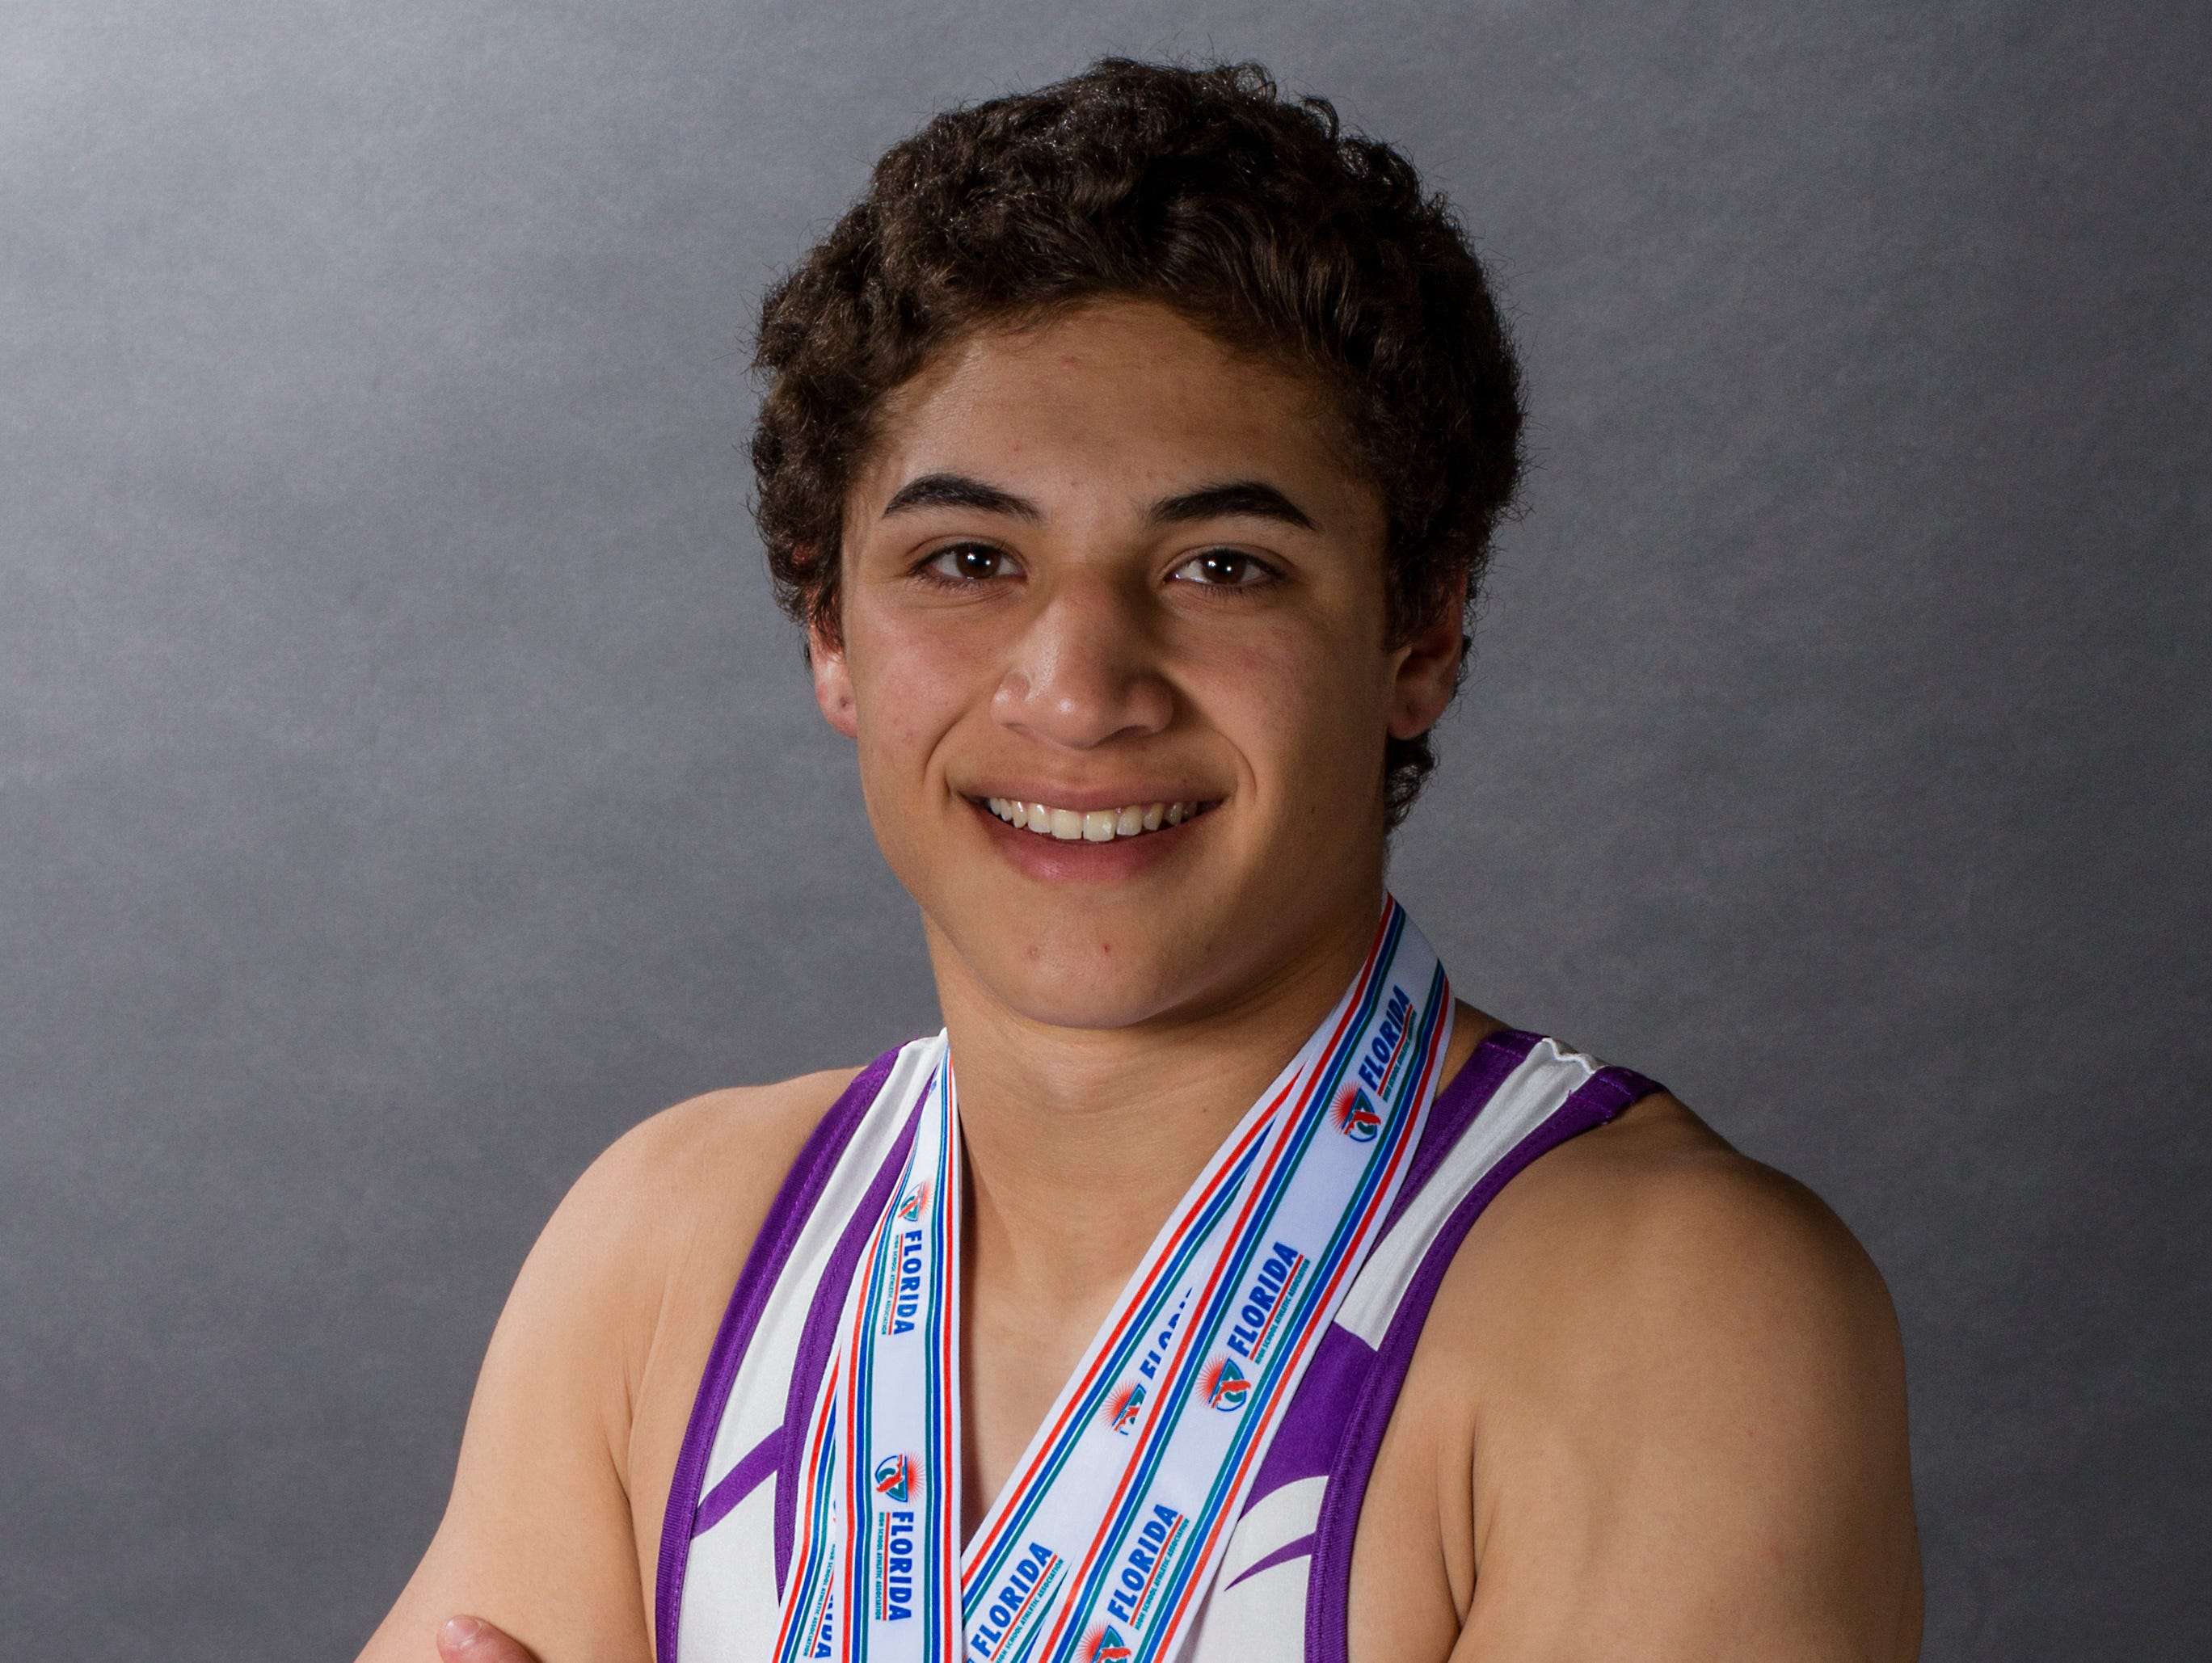 Jalen Soto, 16, is a sophomore wrestler at Cypress Lake High School in Fort Myers.